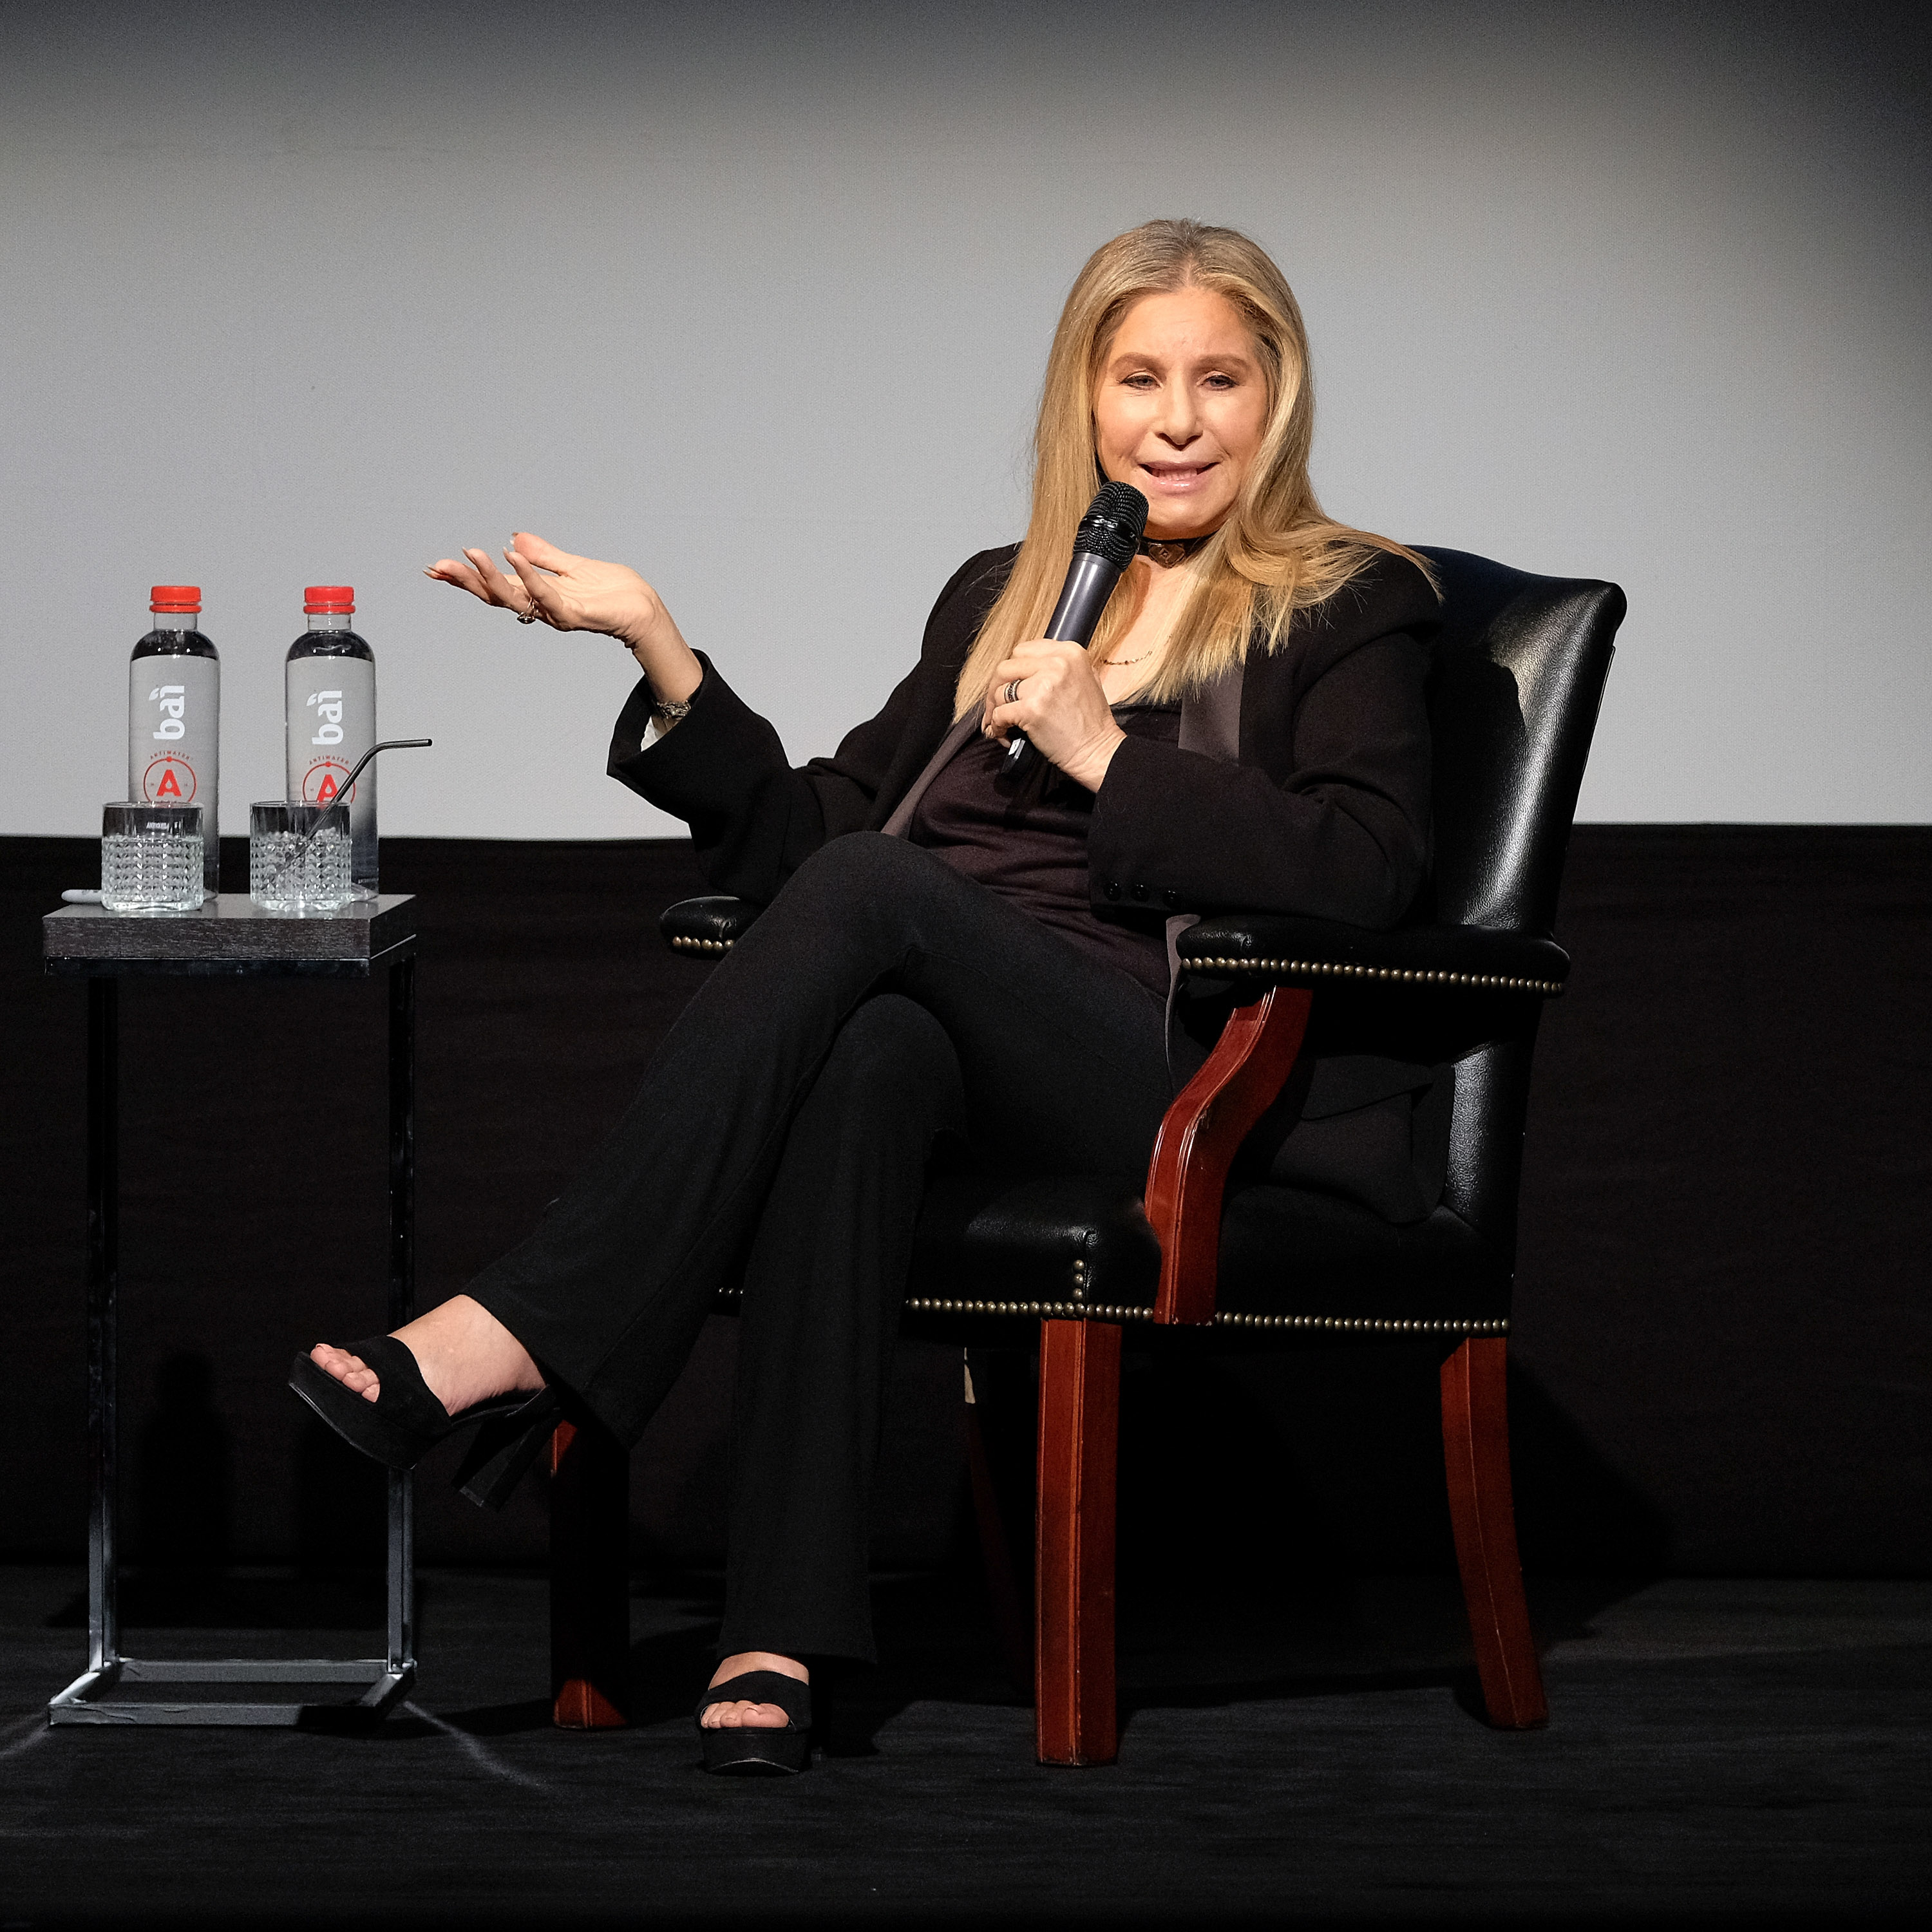 Barbra Streisand is of the opinion that while Michael Jackson may have molested Robson and Safechuck, he deserves our sympathies too (Getty Images)